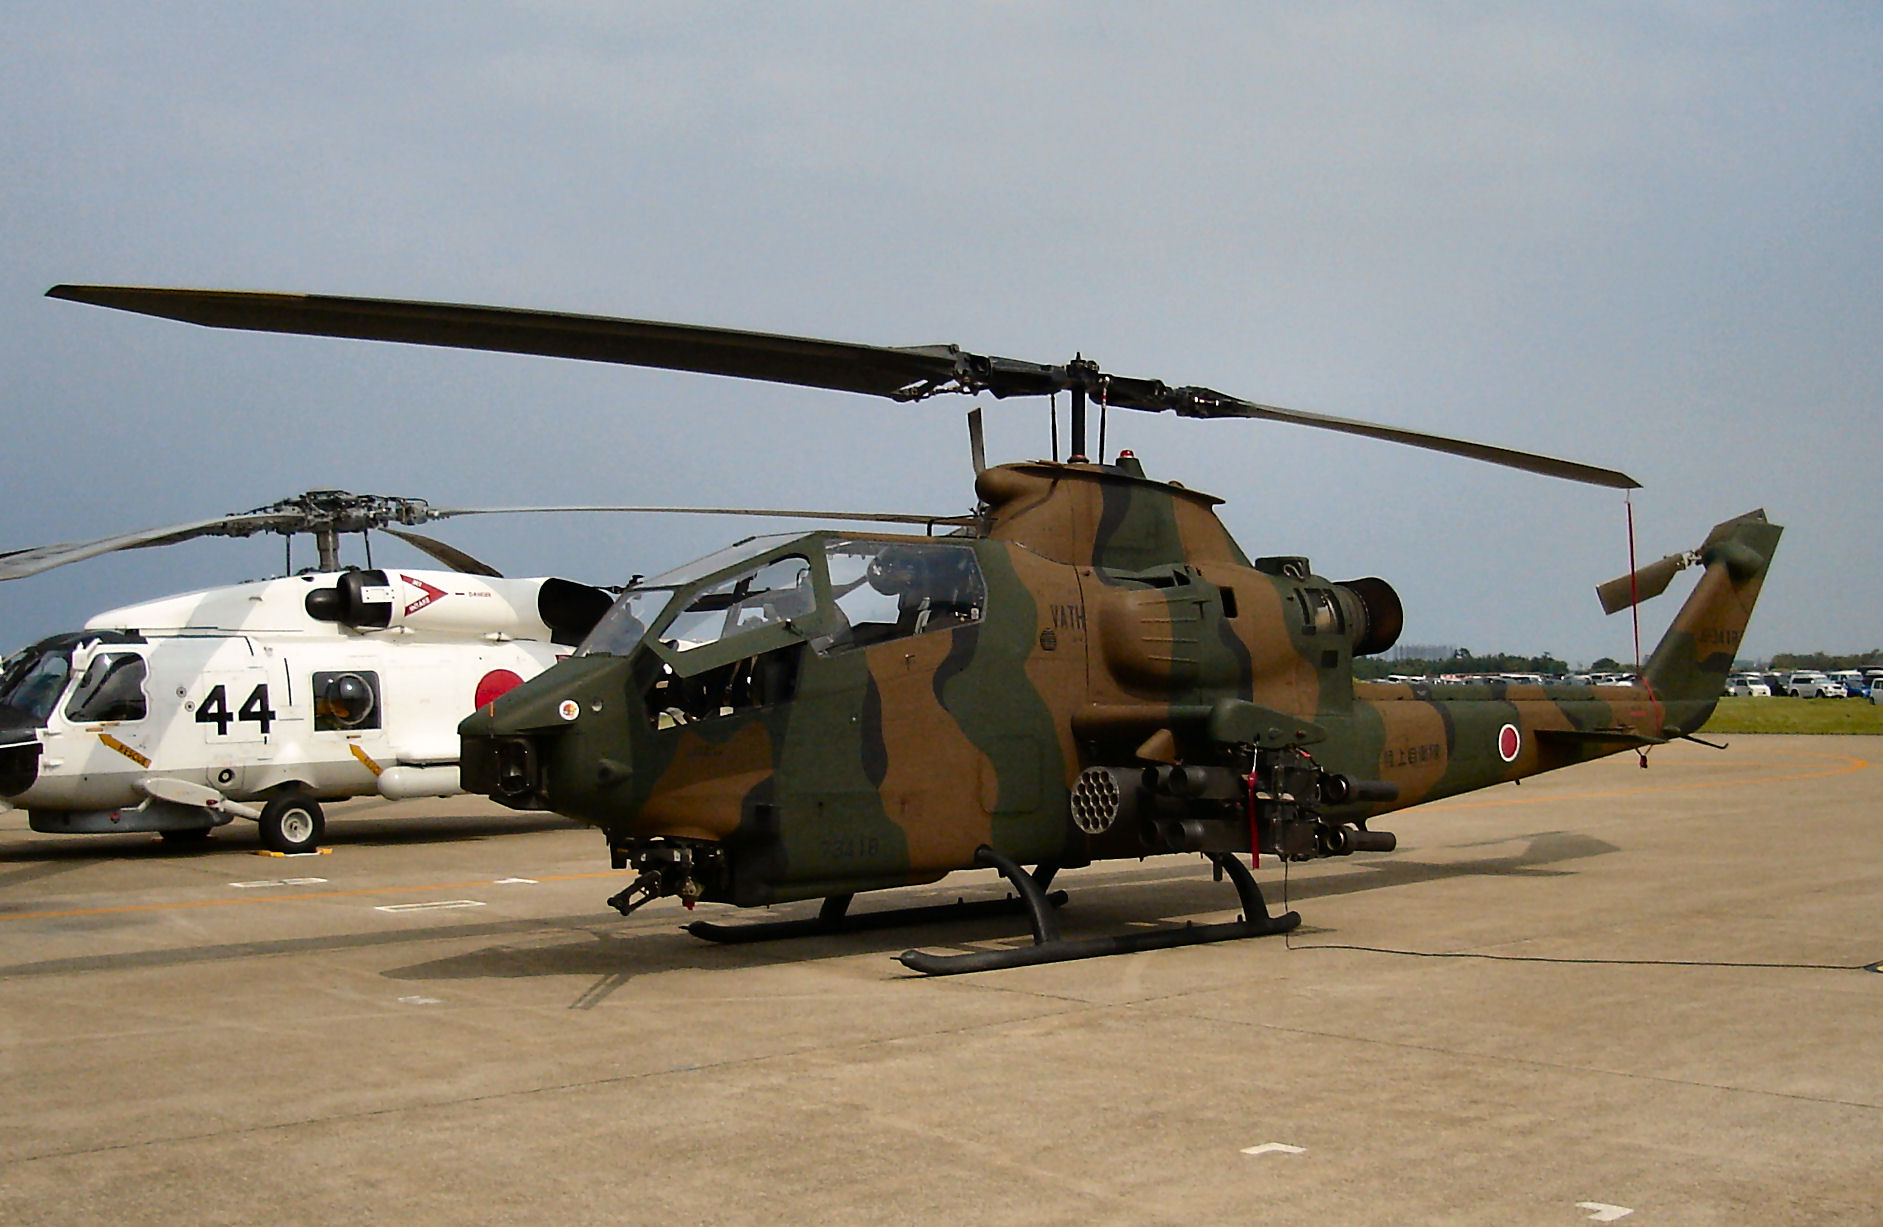 Huey Helicopter For Sale >> File:AH-1S Cobra.jpg - Wikipedia